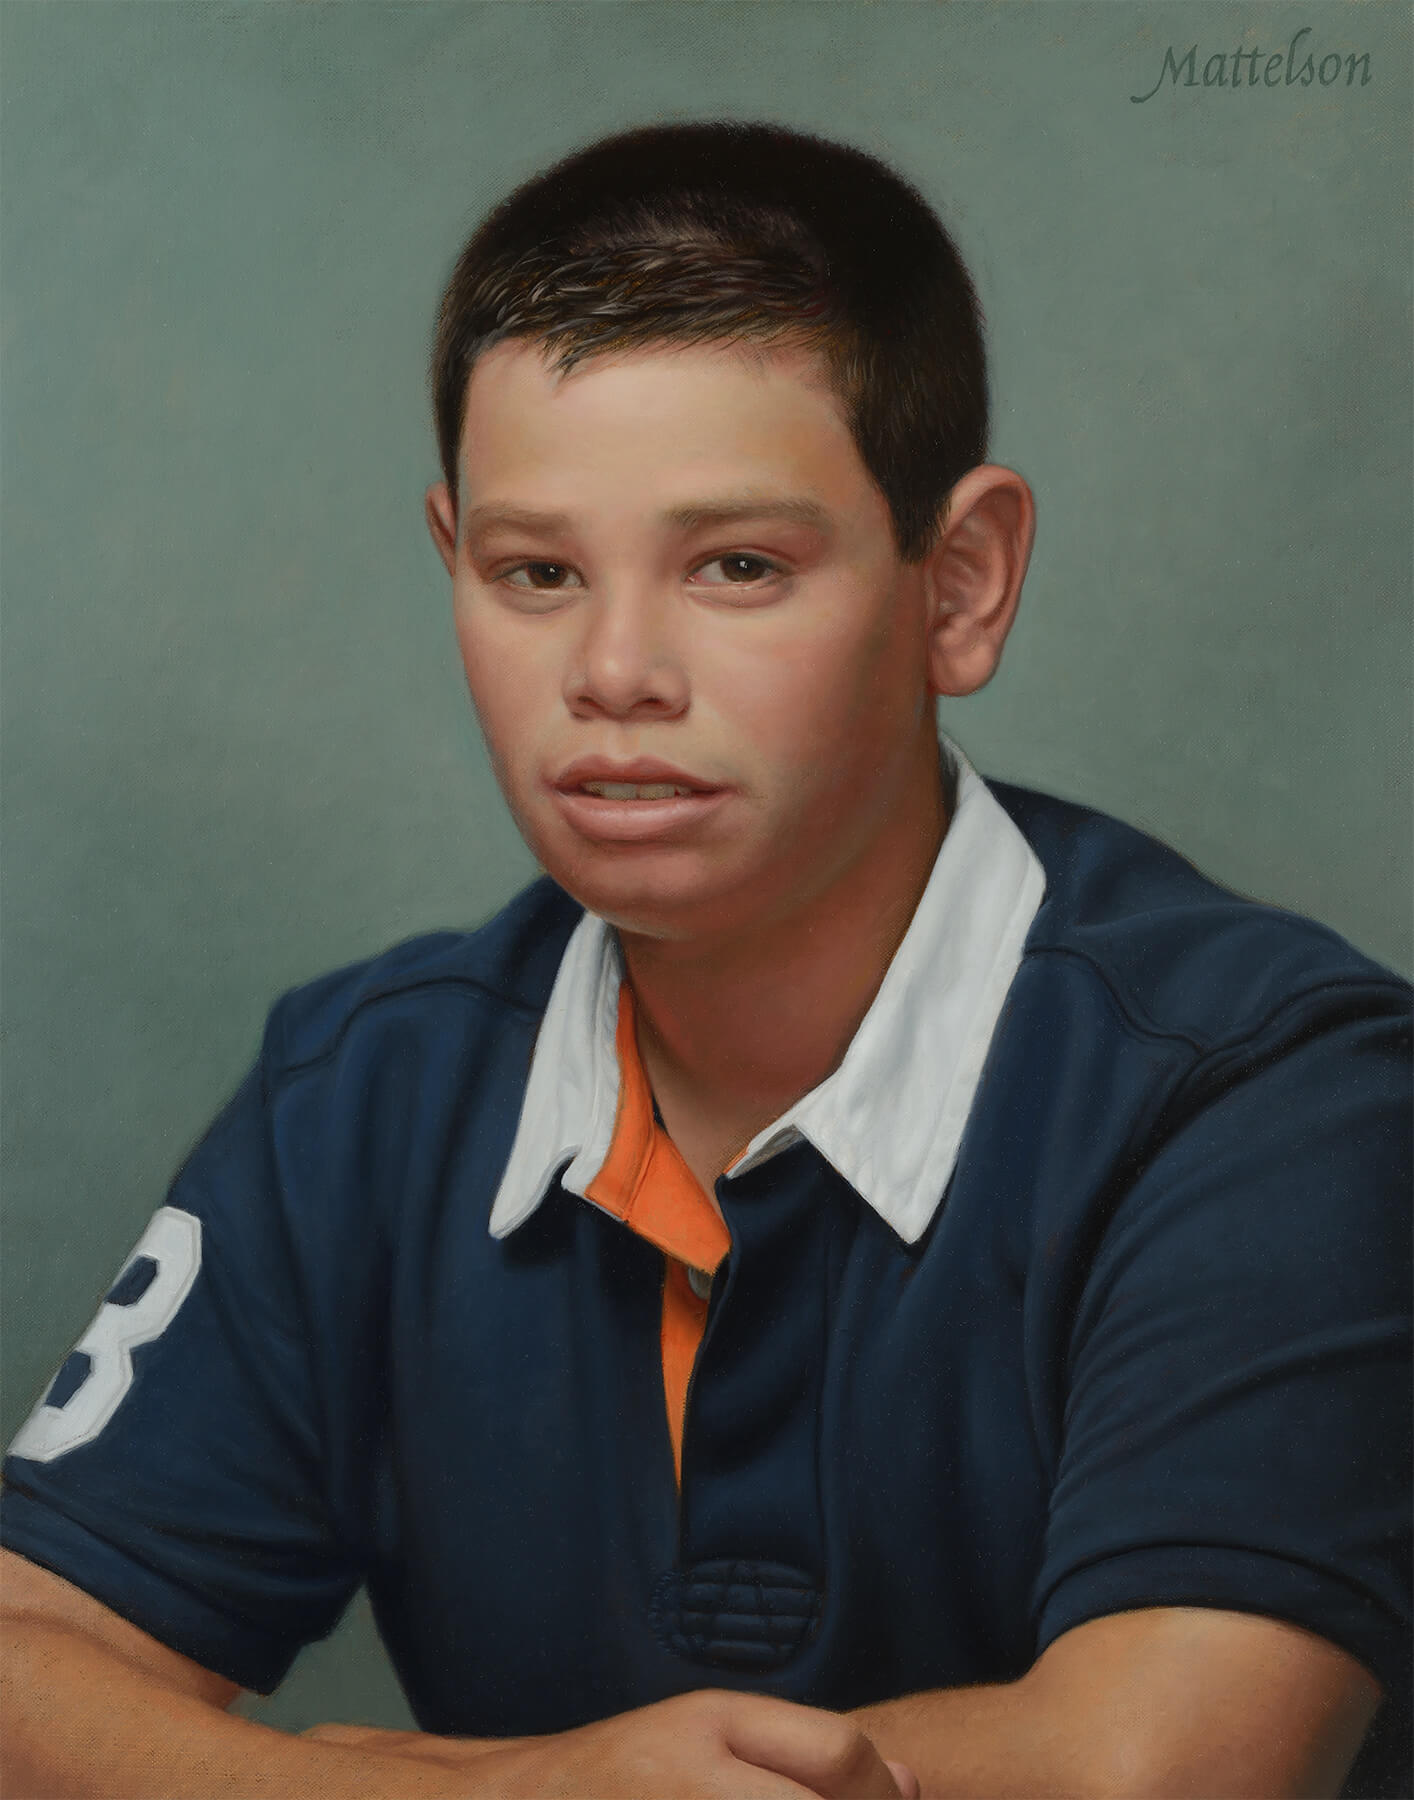 Portrait Painting of a Young Athlete